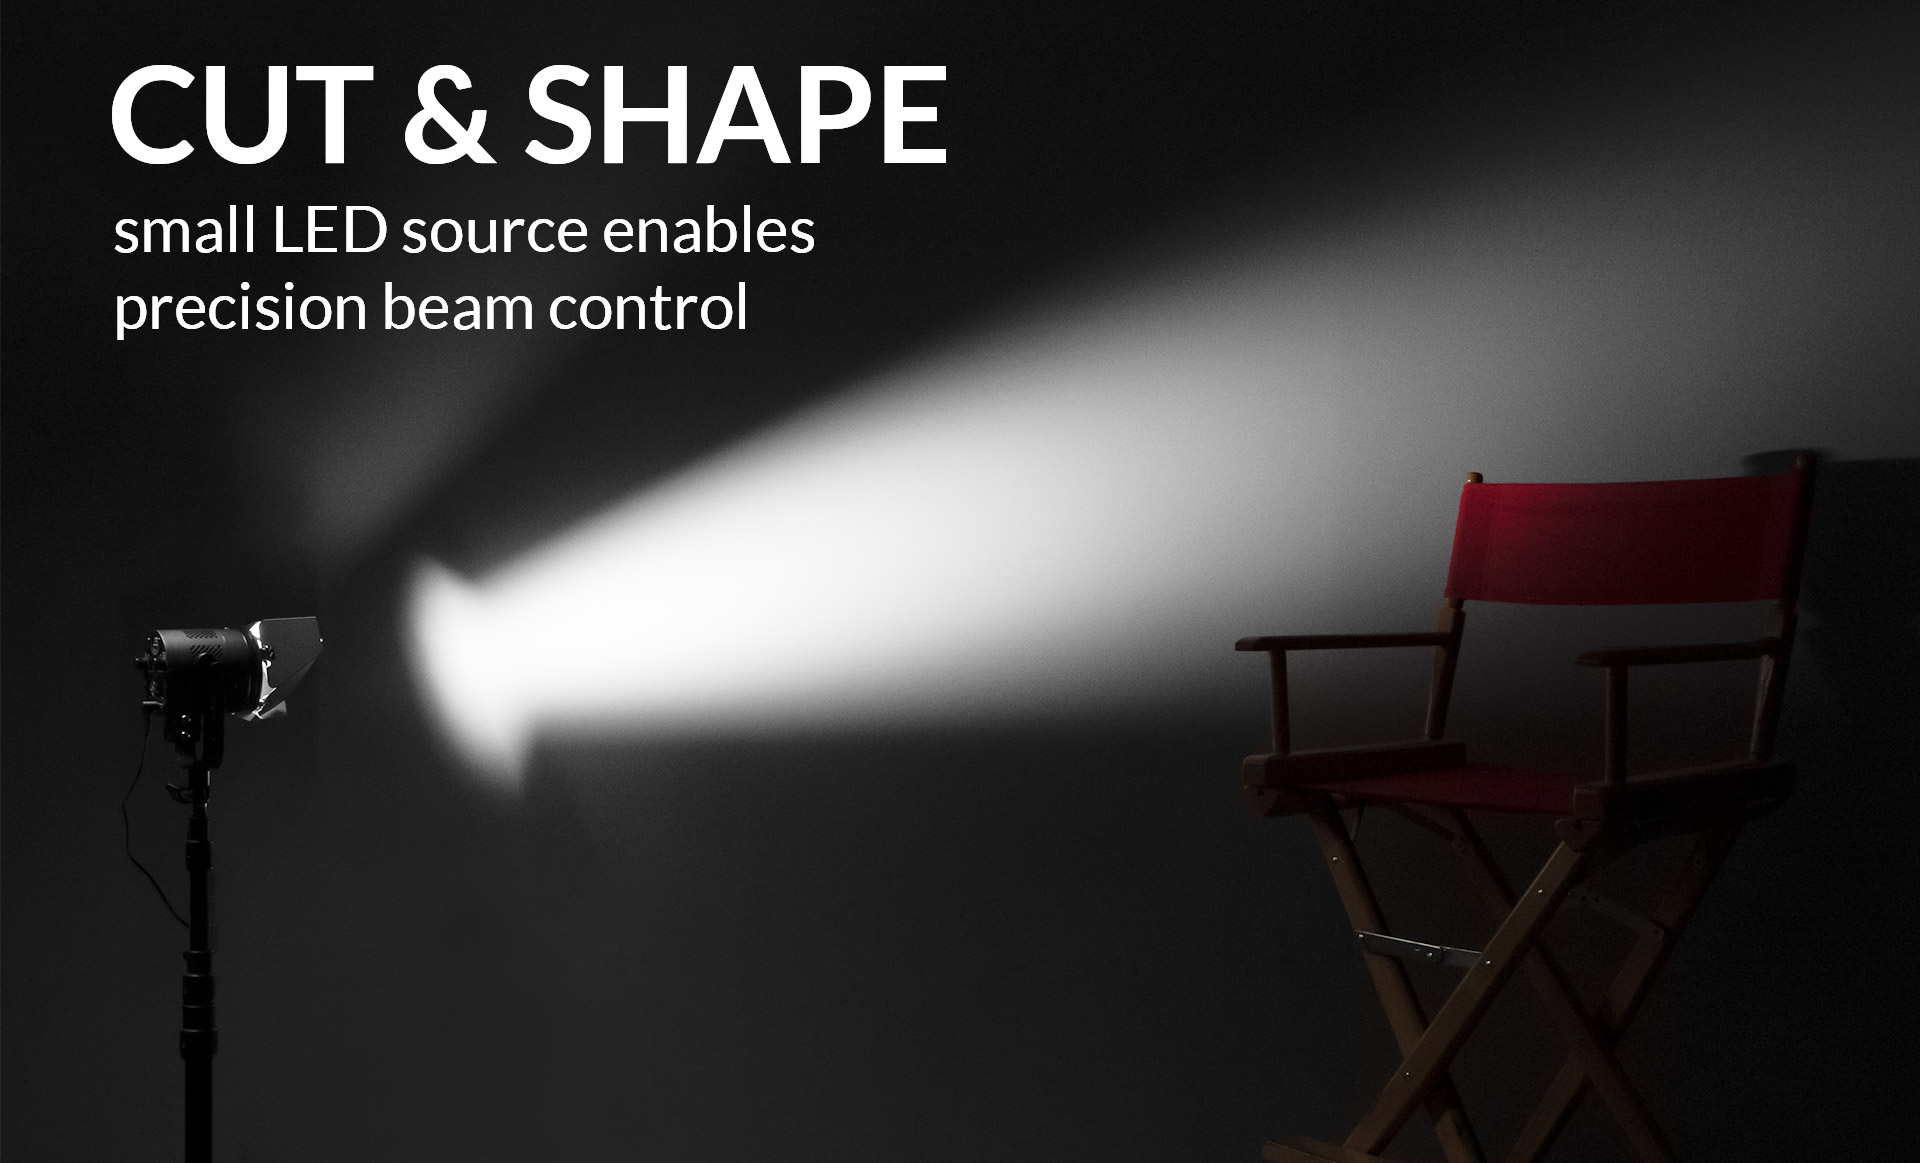 CUT & SHAPE - small LED source enables precision beam control